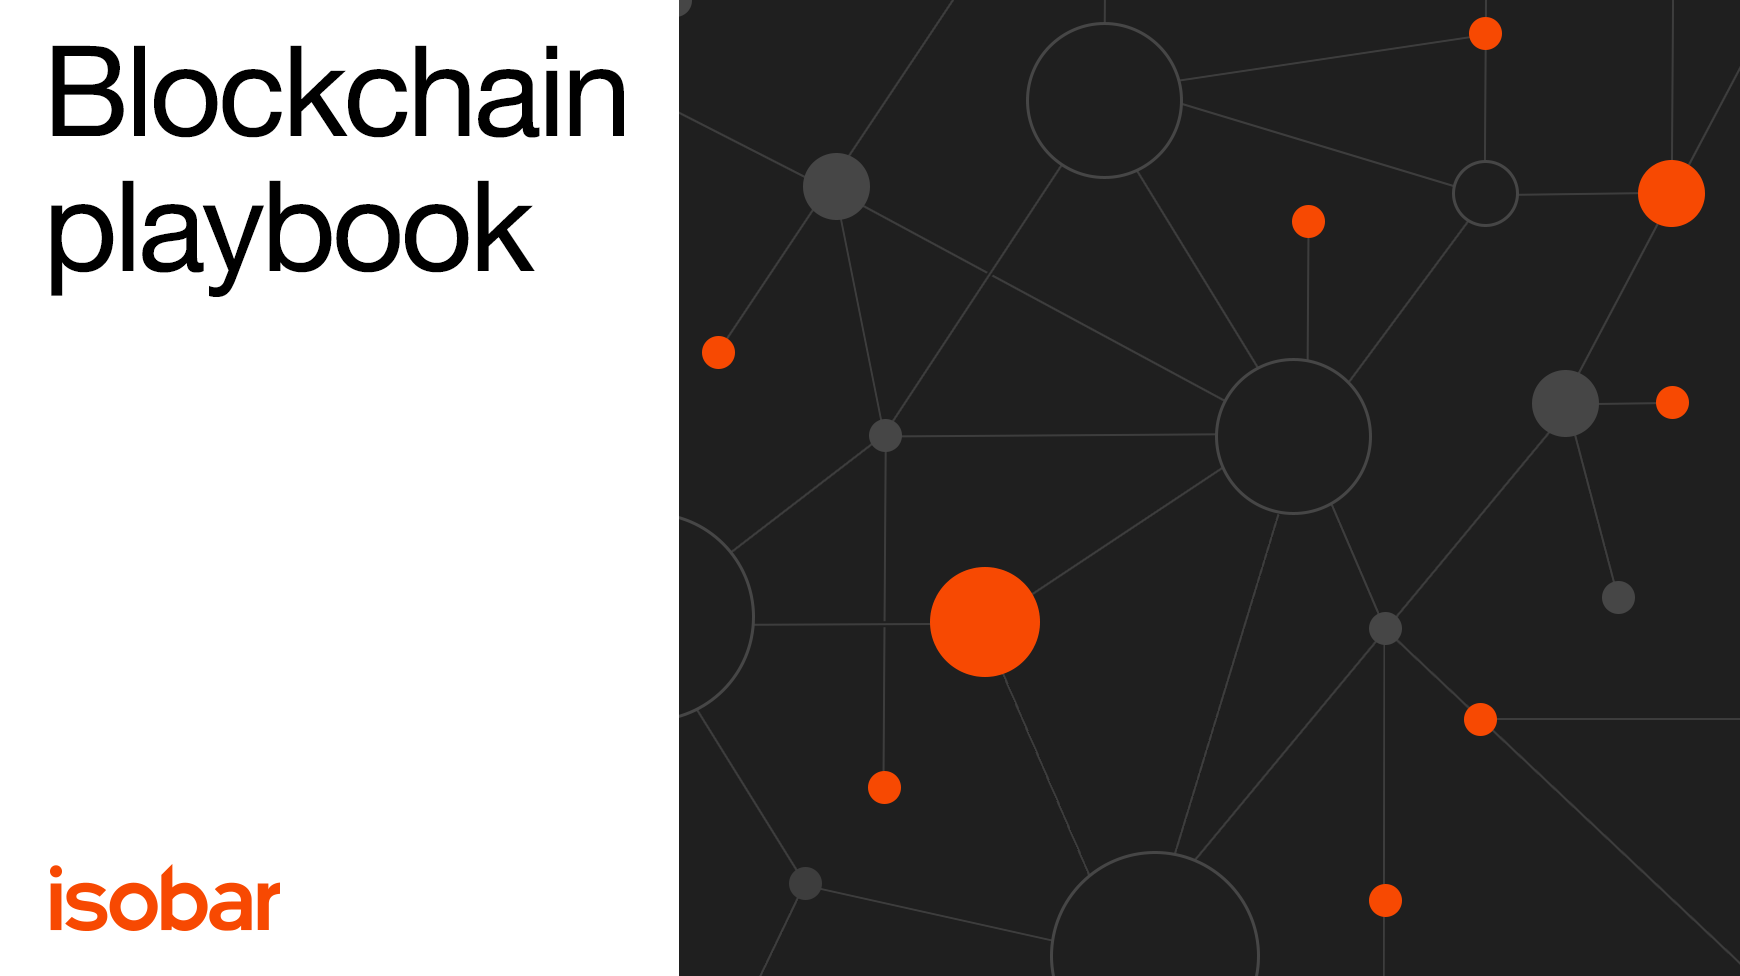 Isobar Launches Blockchain Playbook to Help Marketers Embrace Technology